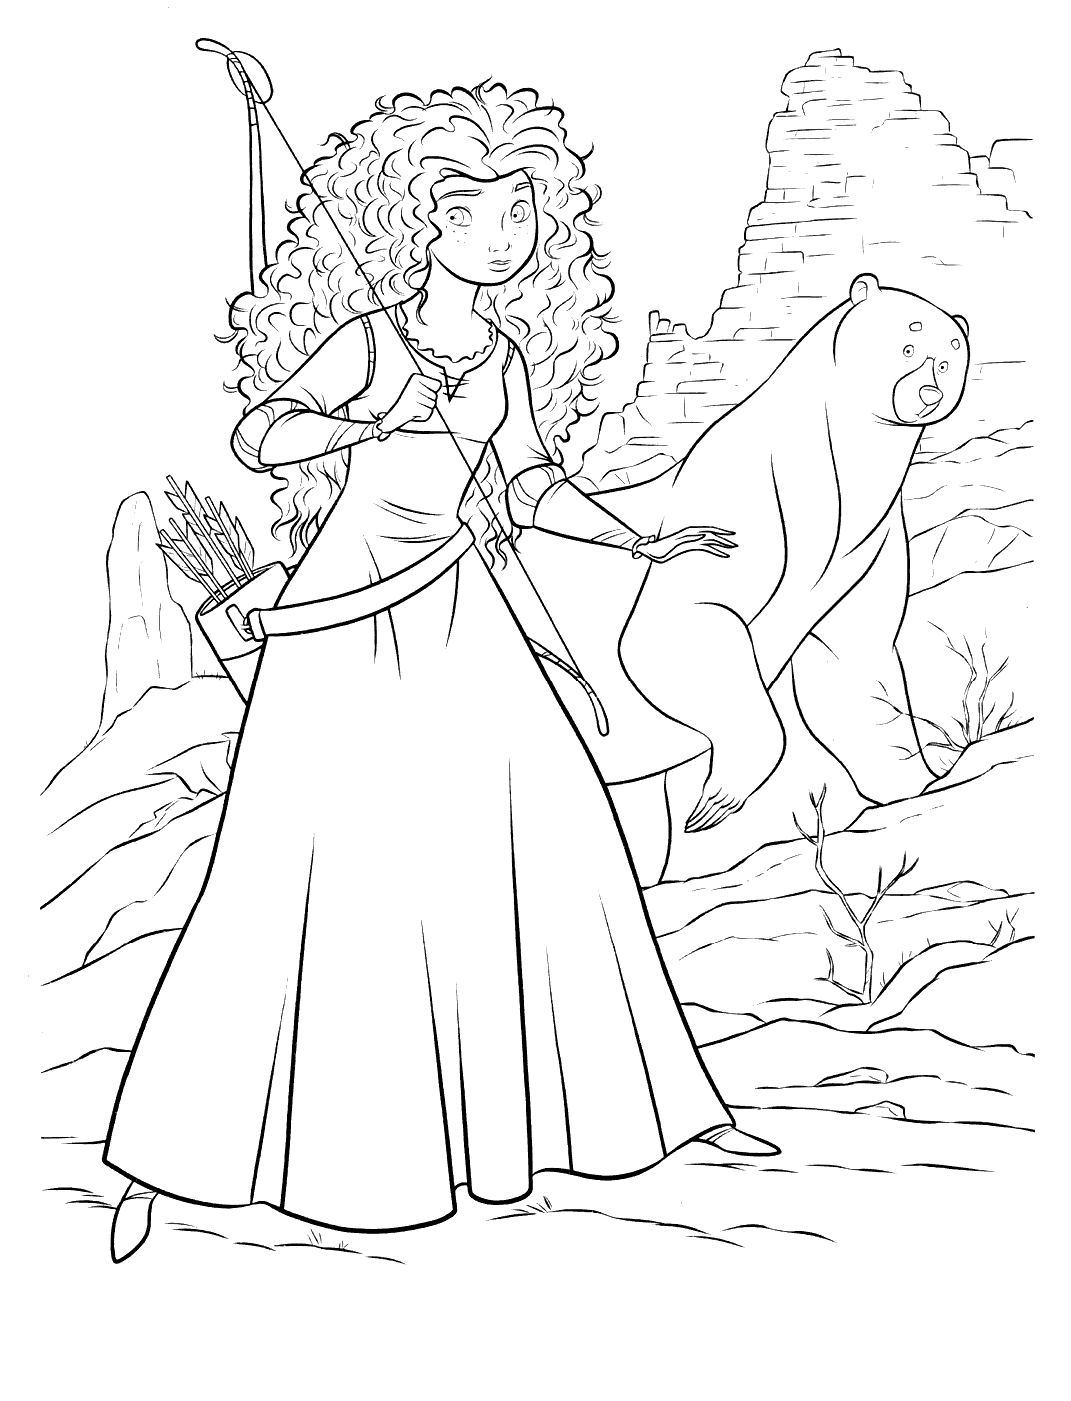 brave coloring pages for kids brave for children brave kids coloring pages coloring pages for kids brave